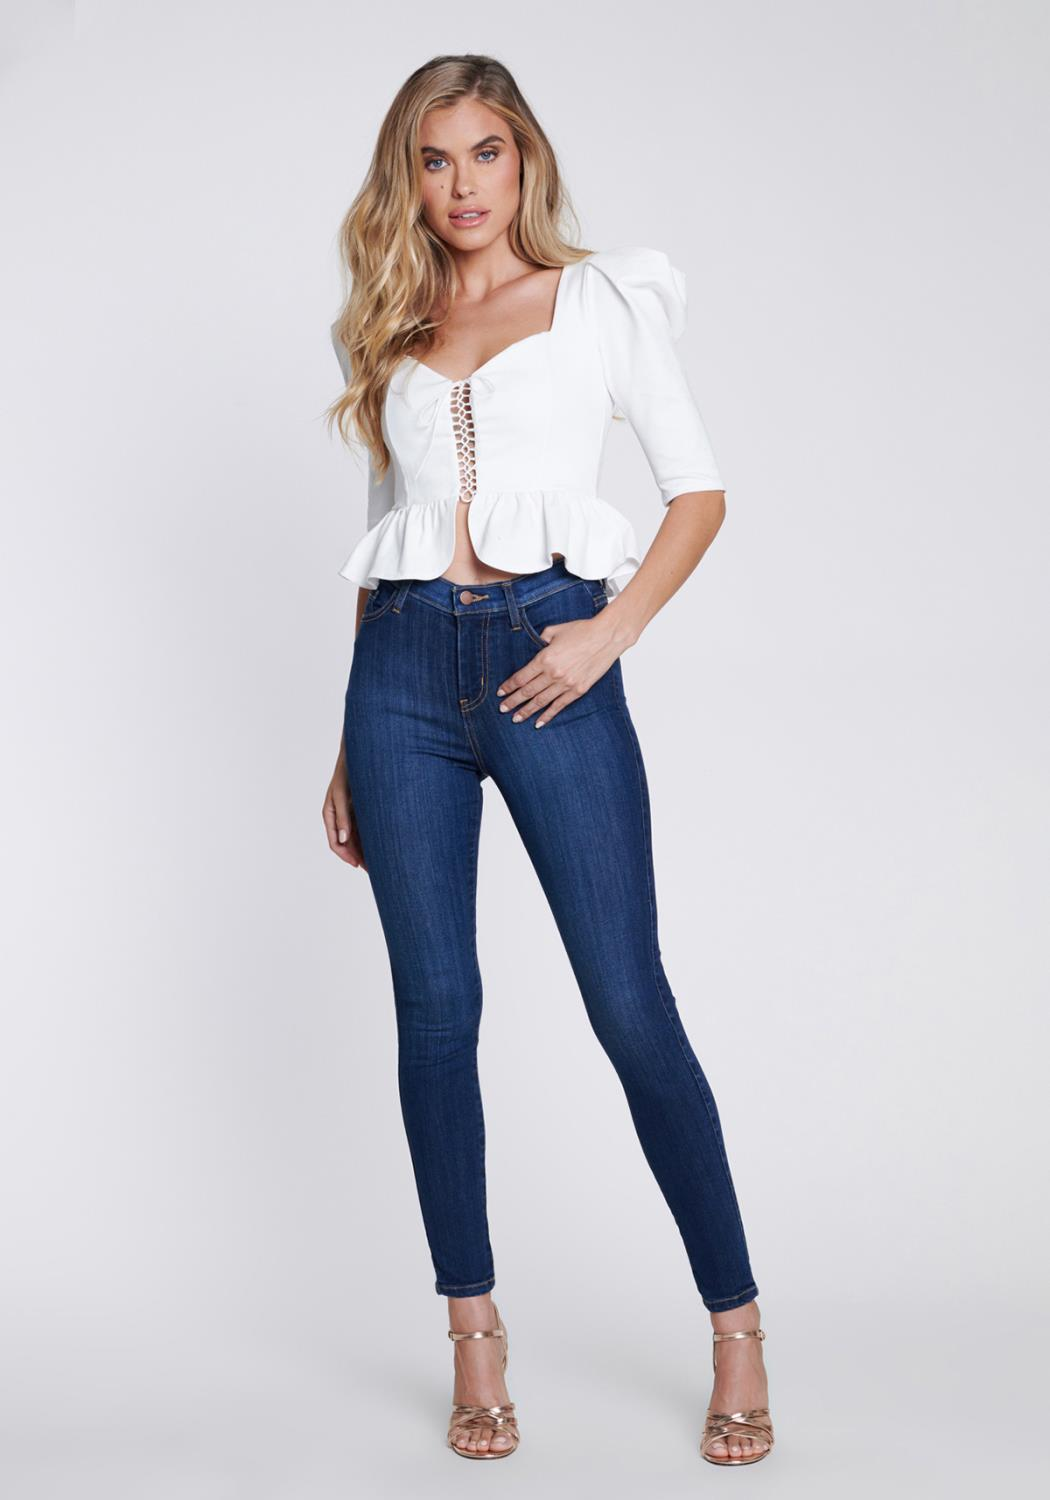 Denim Daze Skinny Jeans